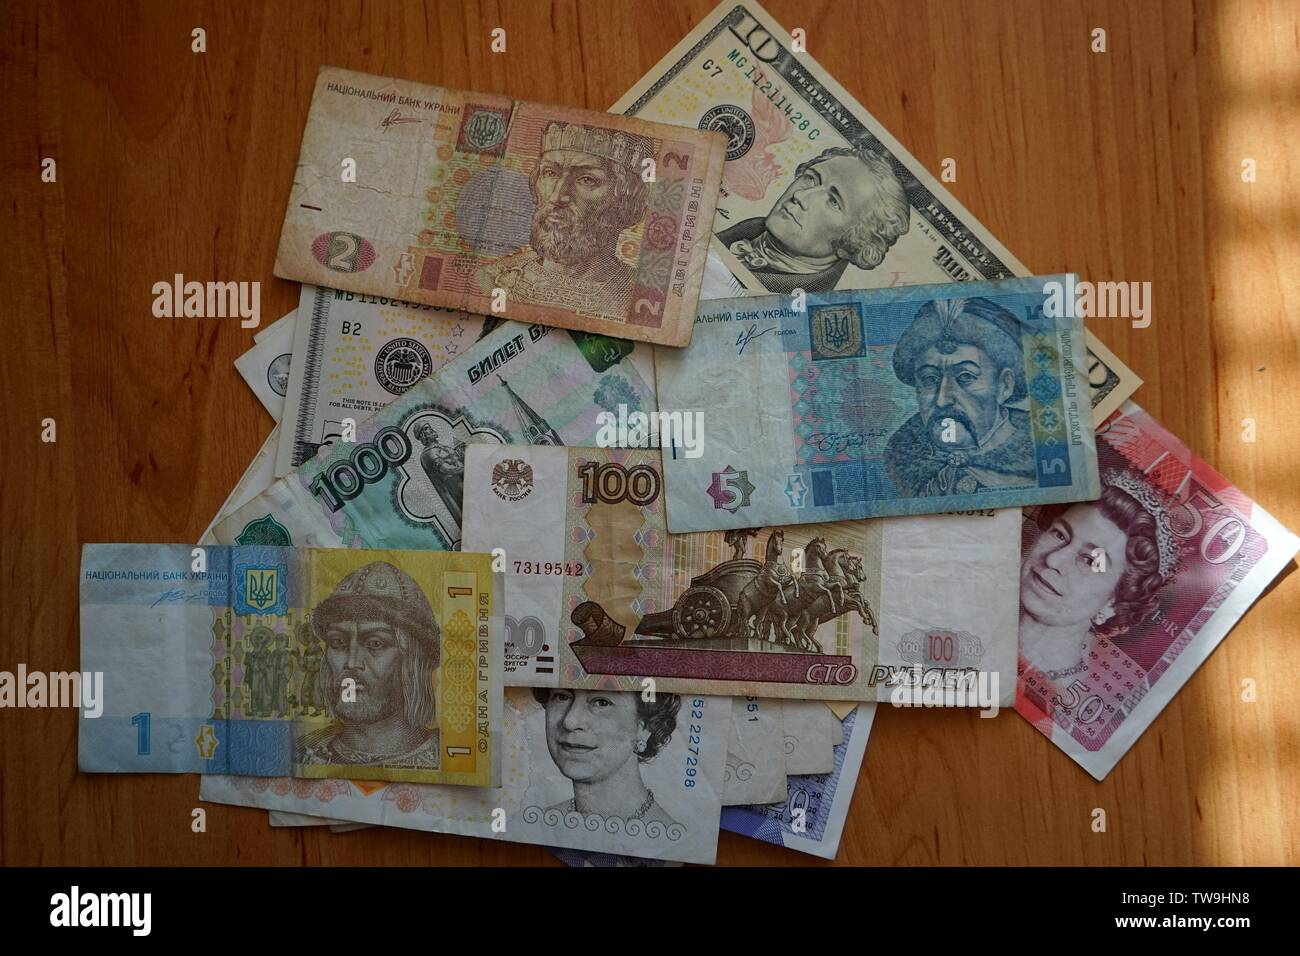 A small selection of world currencies, rubles, hryvnias, dollars and pounds. - Stock Image